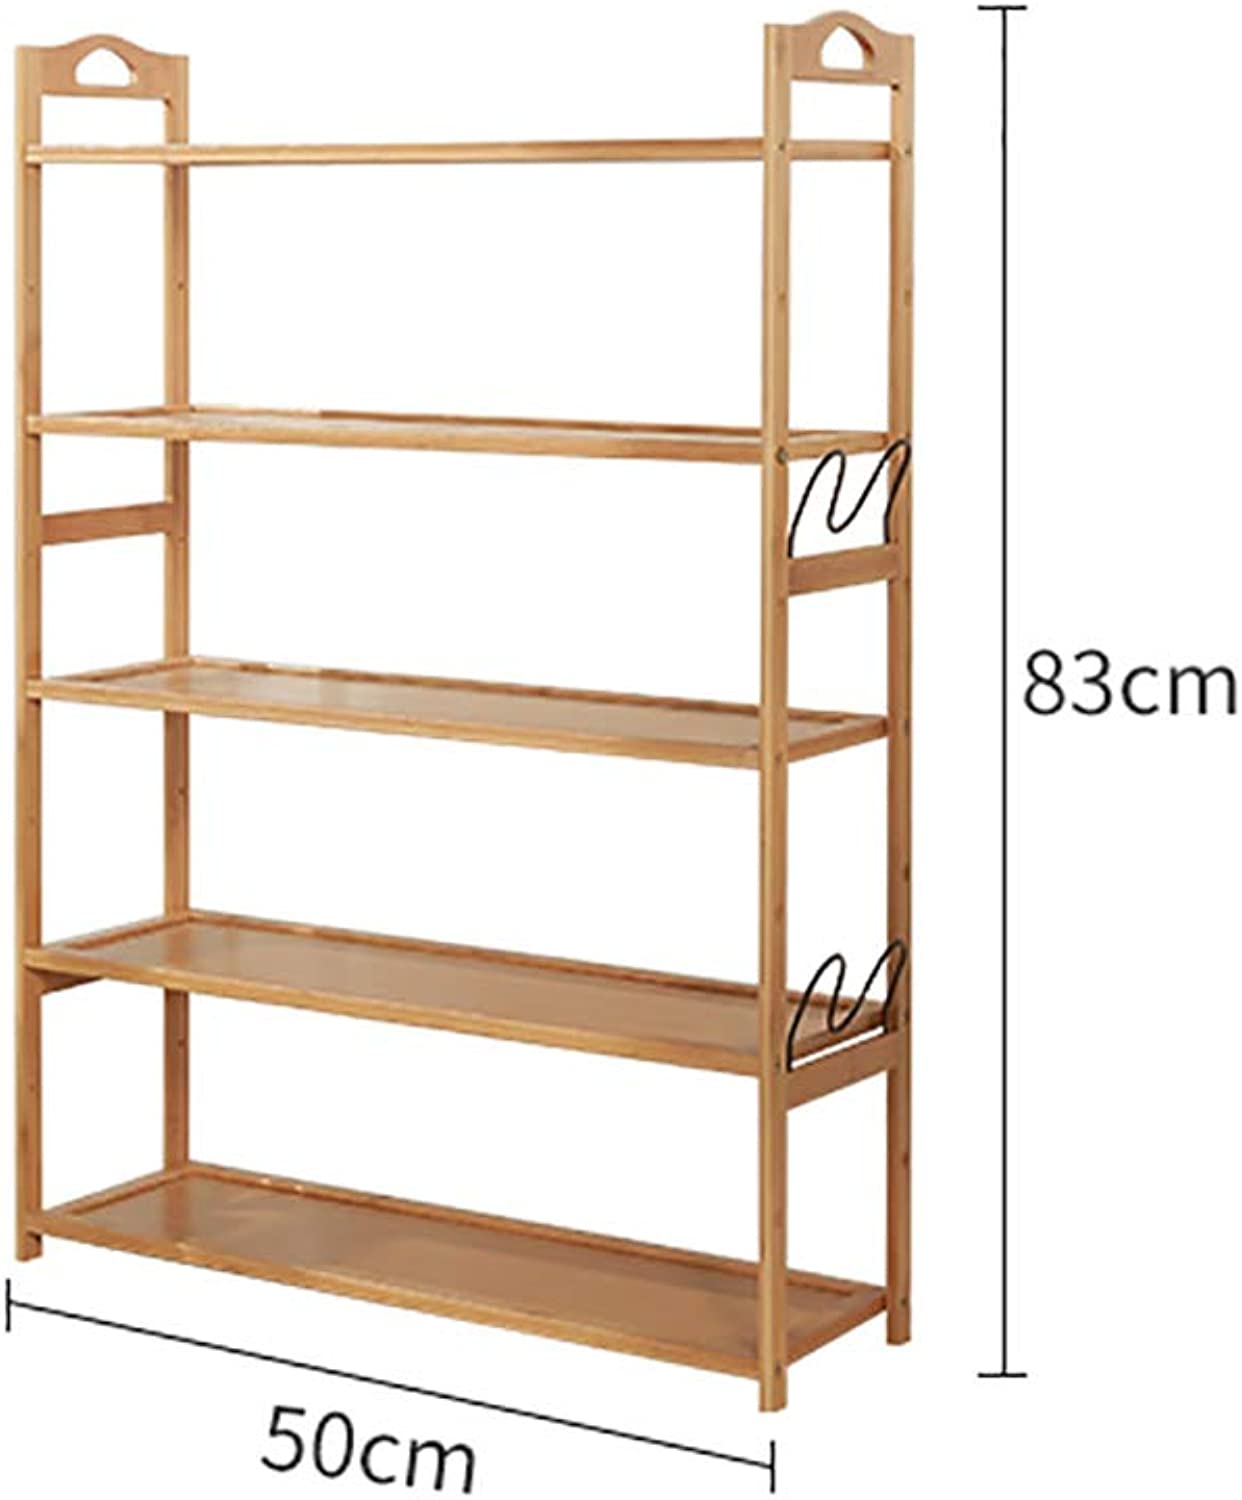 3 4 5 6-layer shoes Rack Shelf hot Pot Rack Flower Stand Bookshelf Storage Shelf shoes Cabinet Multifunction Household Doorway Entrance Space Saving (Size   50  24  83cm)